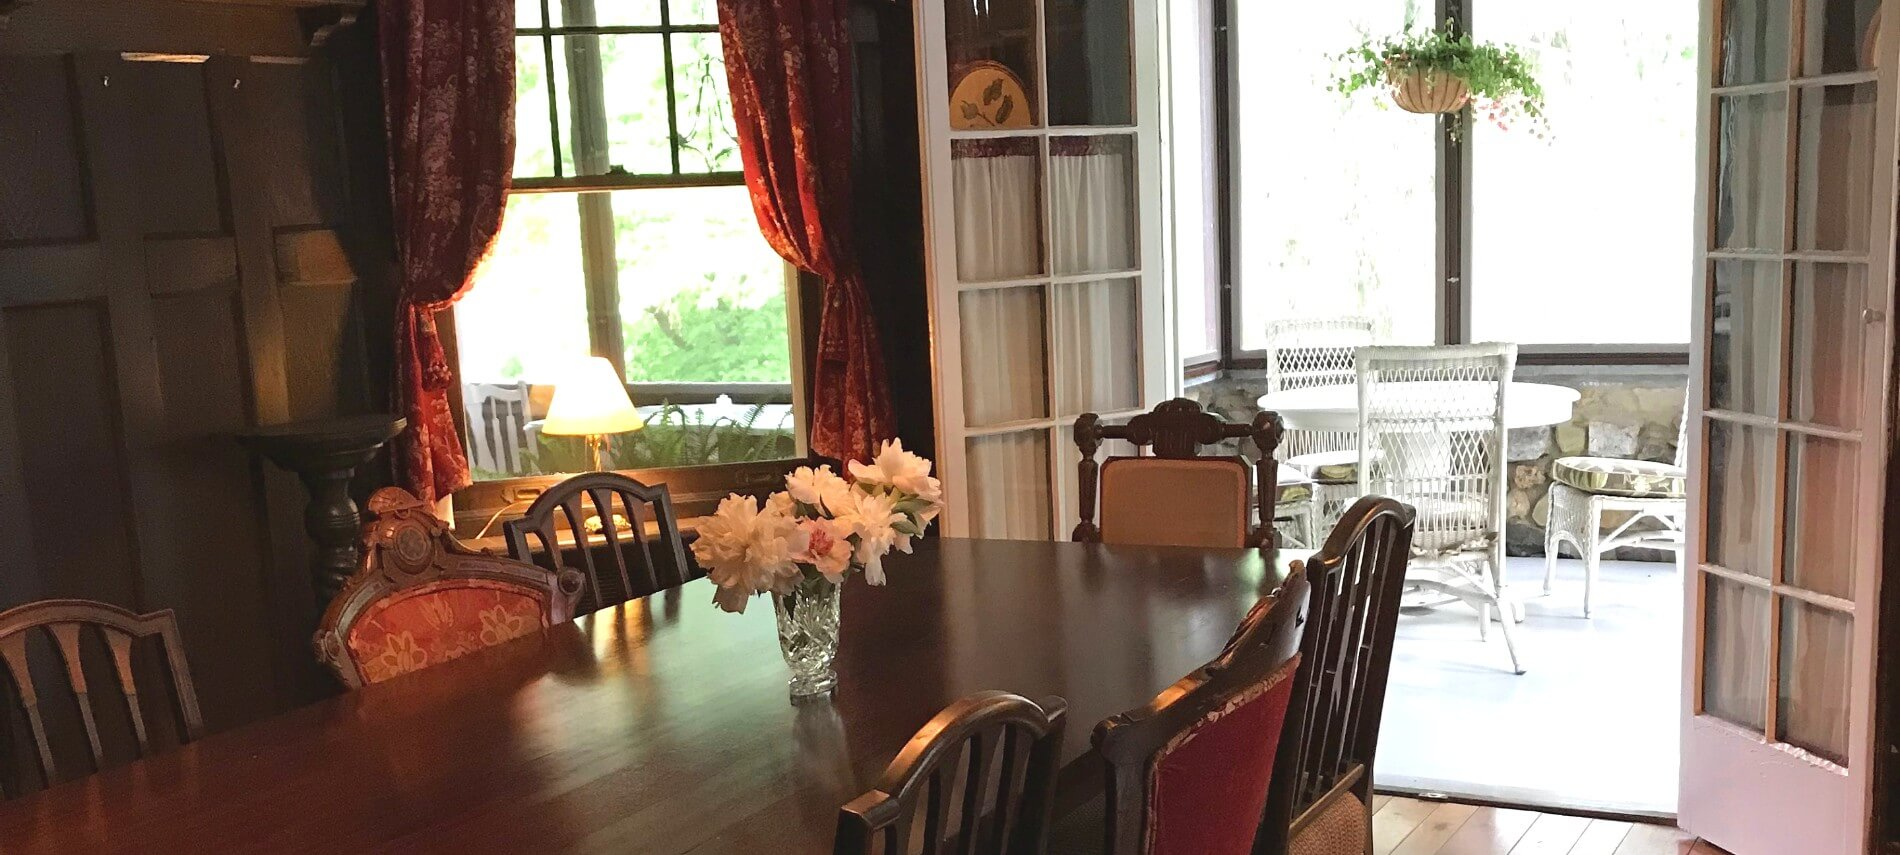 Elegant dining room with large dark brown table, red curtains and French doors opening to a bright patio